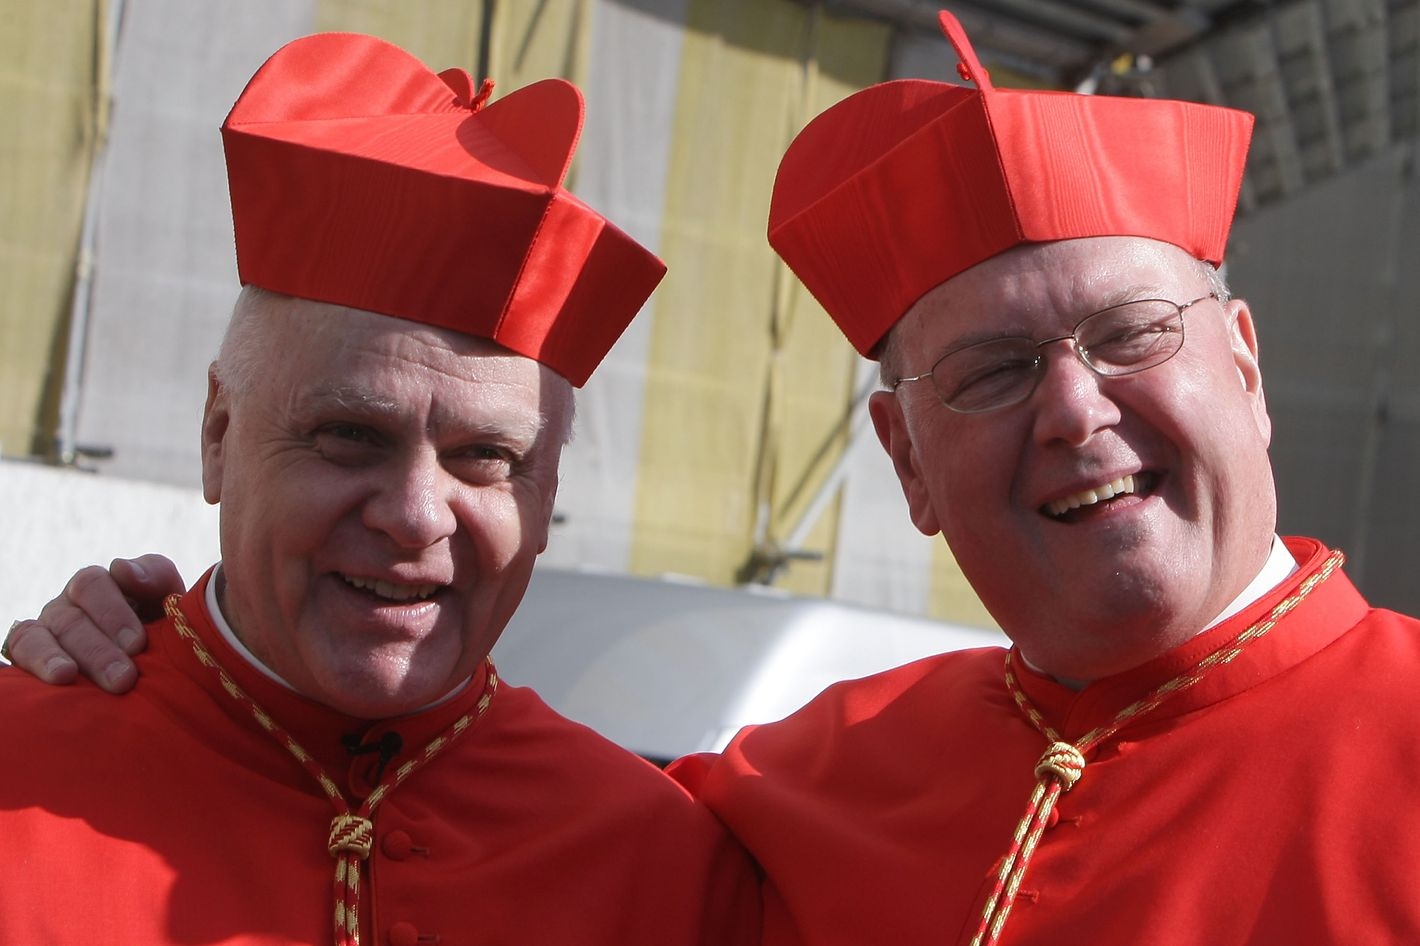 VATICAN CITY, VATICAN - FEBRUARY 18:  Newly appointed cardinals Timothy Michael Dolan (R), Archbishop of New York, and Cardinal Frederick O'Brien (L), Archbishop of Baltimora smile as they leave Saint Peter's Basilica after a ceremony held by Pope Benedict XVI on February 18, 2012 in Vatican City, Vatican.The 84 year old Pontiff installed 22 new cardinals during a ceremony today. These men will be responsible for choosing his sucessor. (Photo by Franco Origlia/Getty Images)